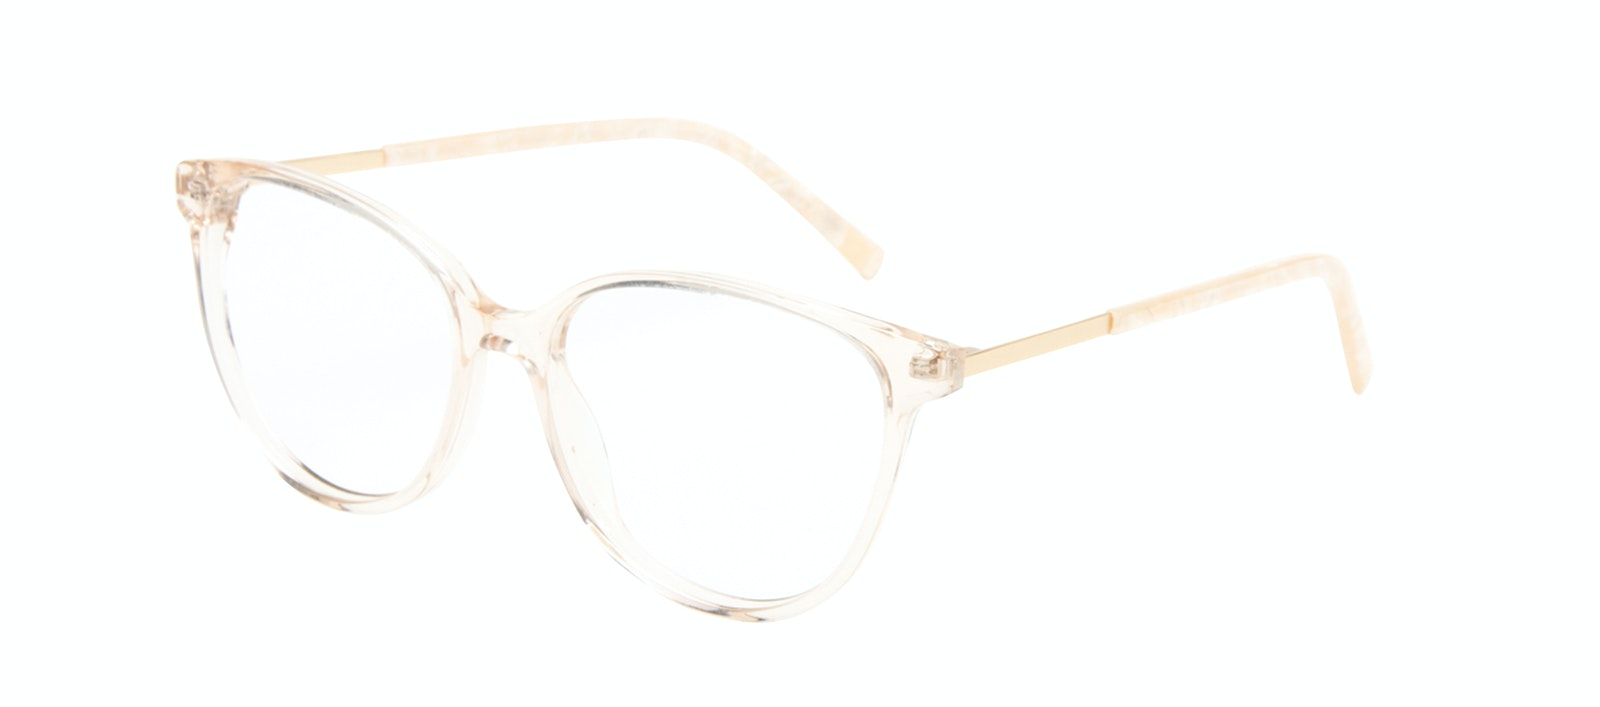 Affordable Fashion Glasses Cat Eye Eyeglasses Women Imagine II Golden Marble Tilt